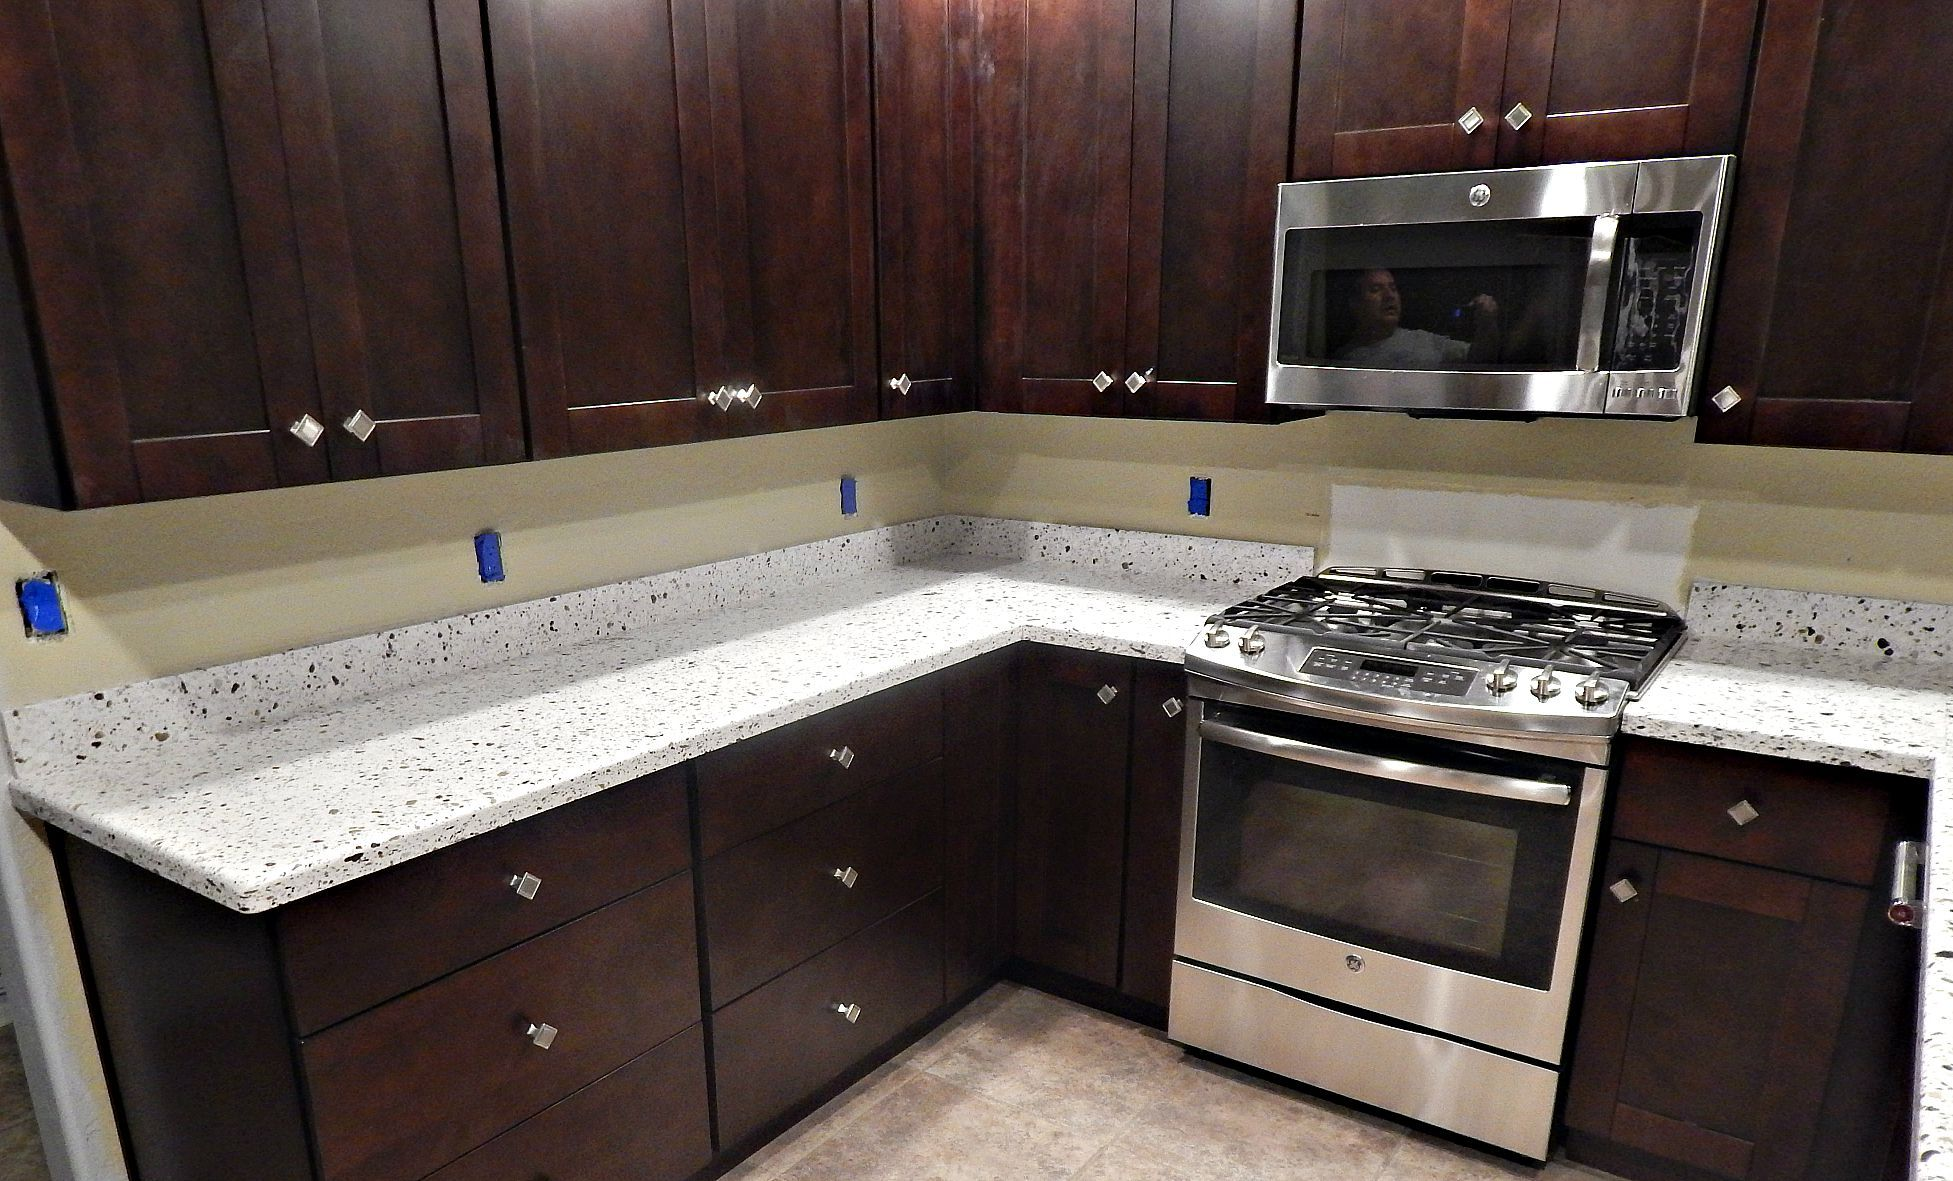 Emerald Pearl Granite Kitchen Seleno Quartz Countertops With Demi Bullnose Edge And Standard 4